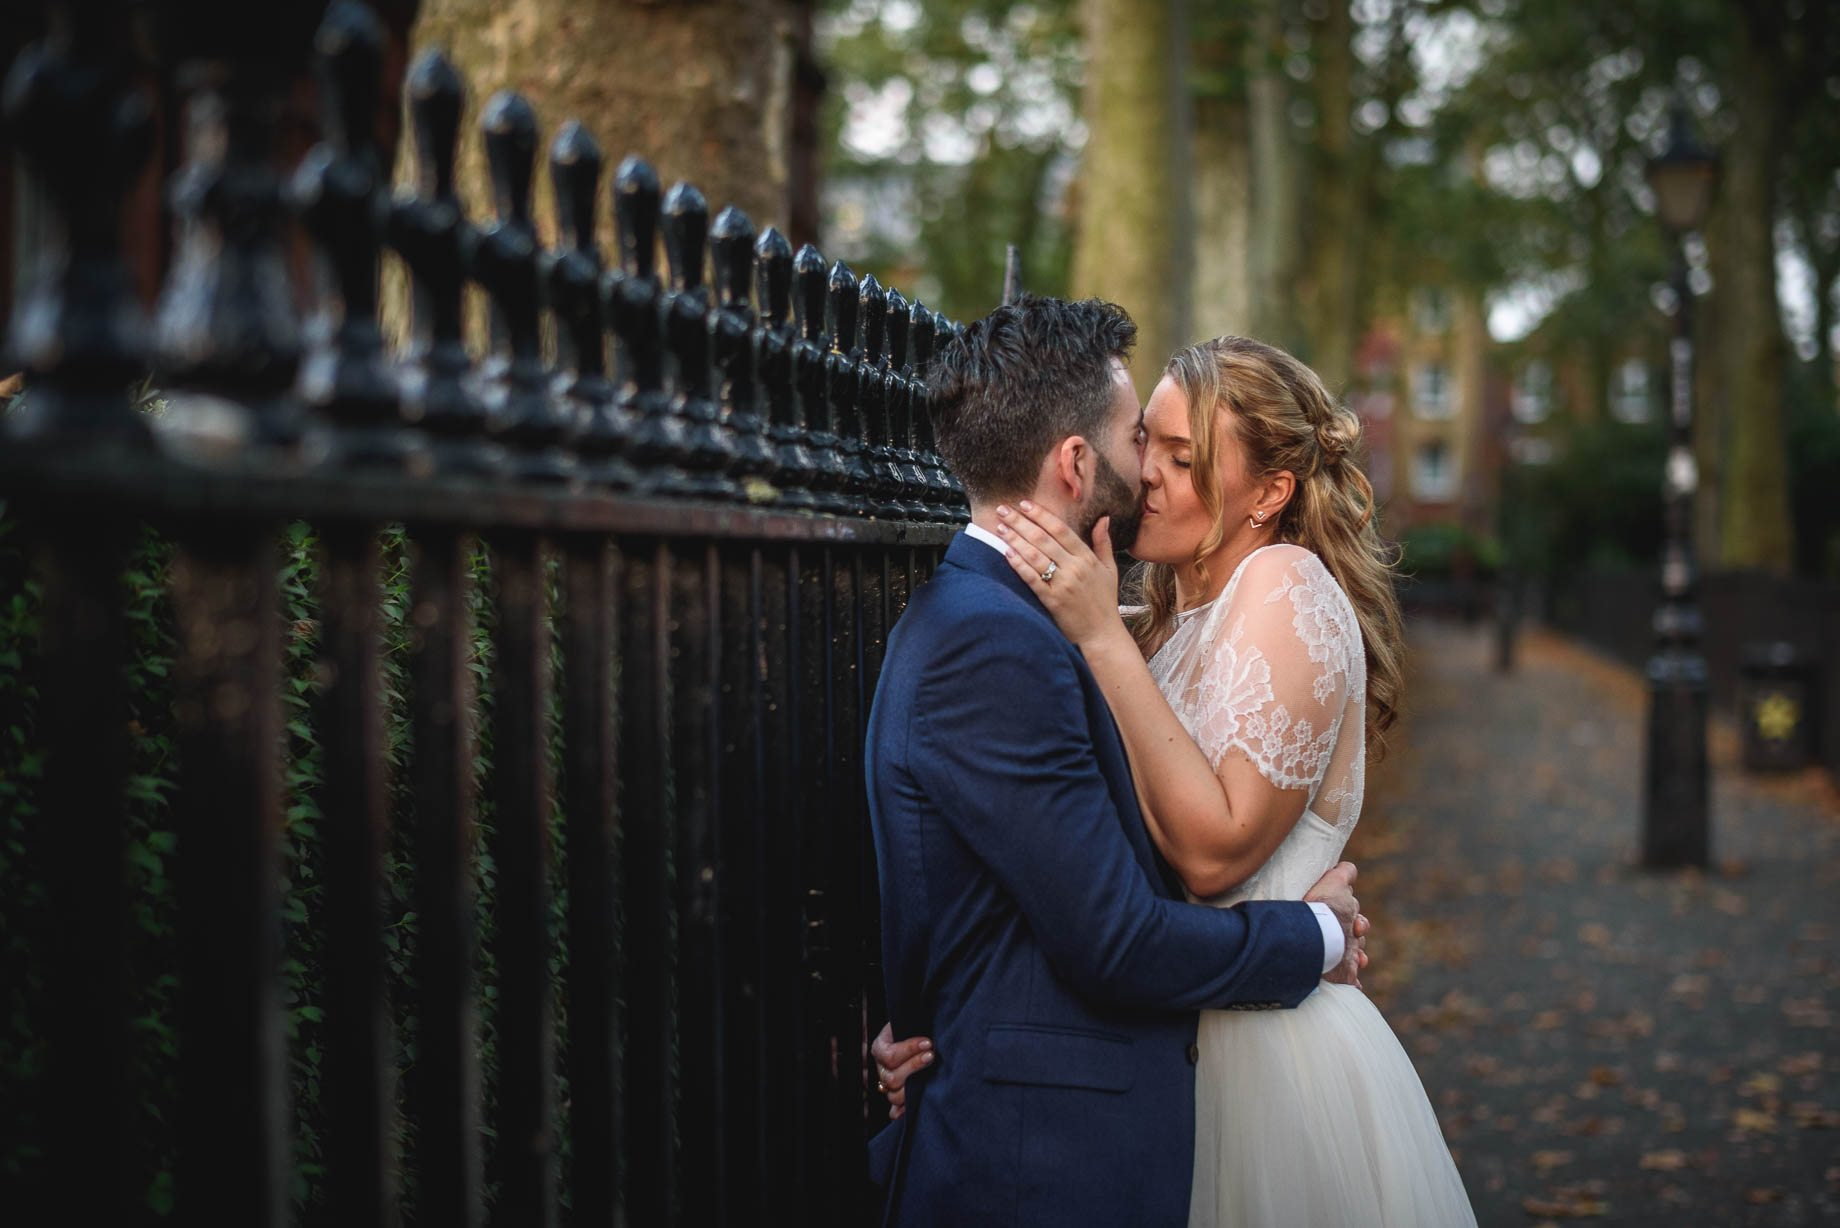 London Wedding Photography - Guy Collier Photography - LJ + Russell (137 of 155)